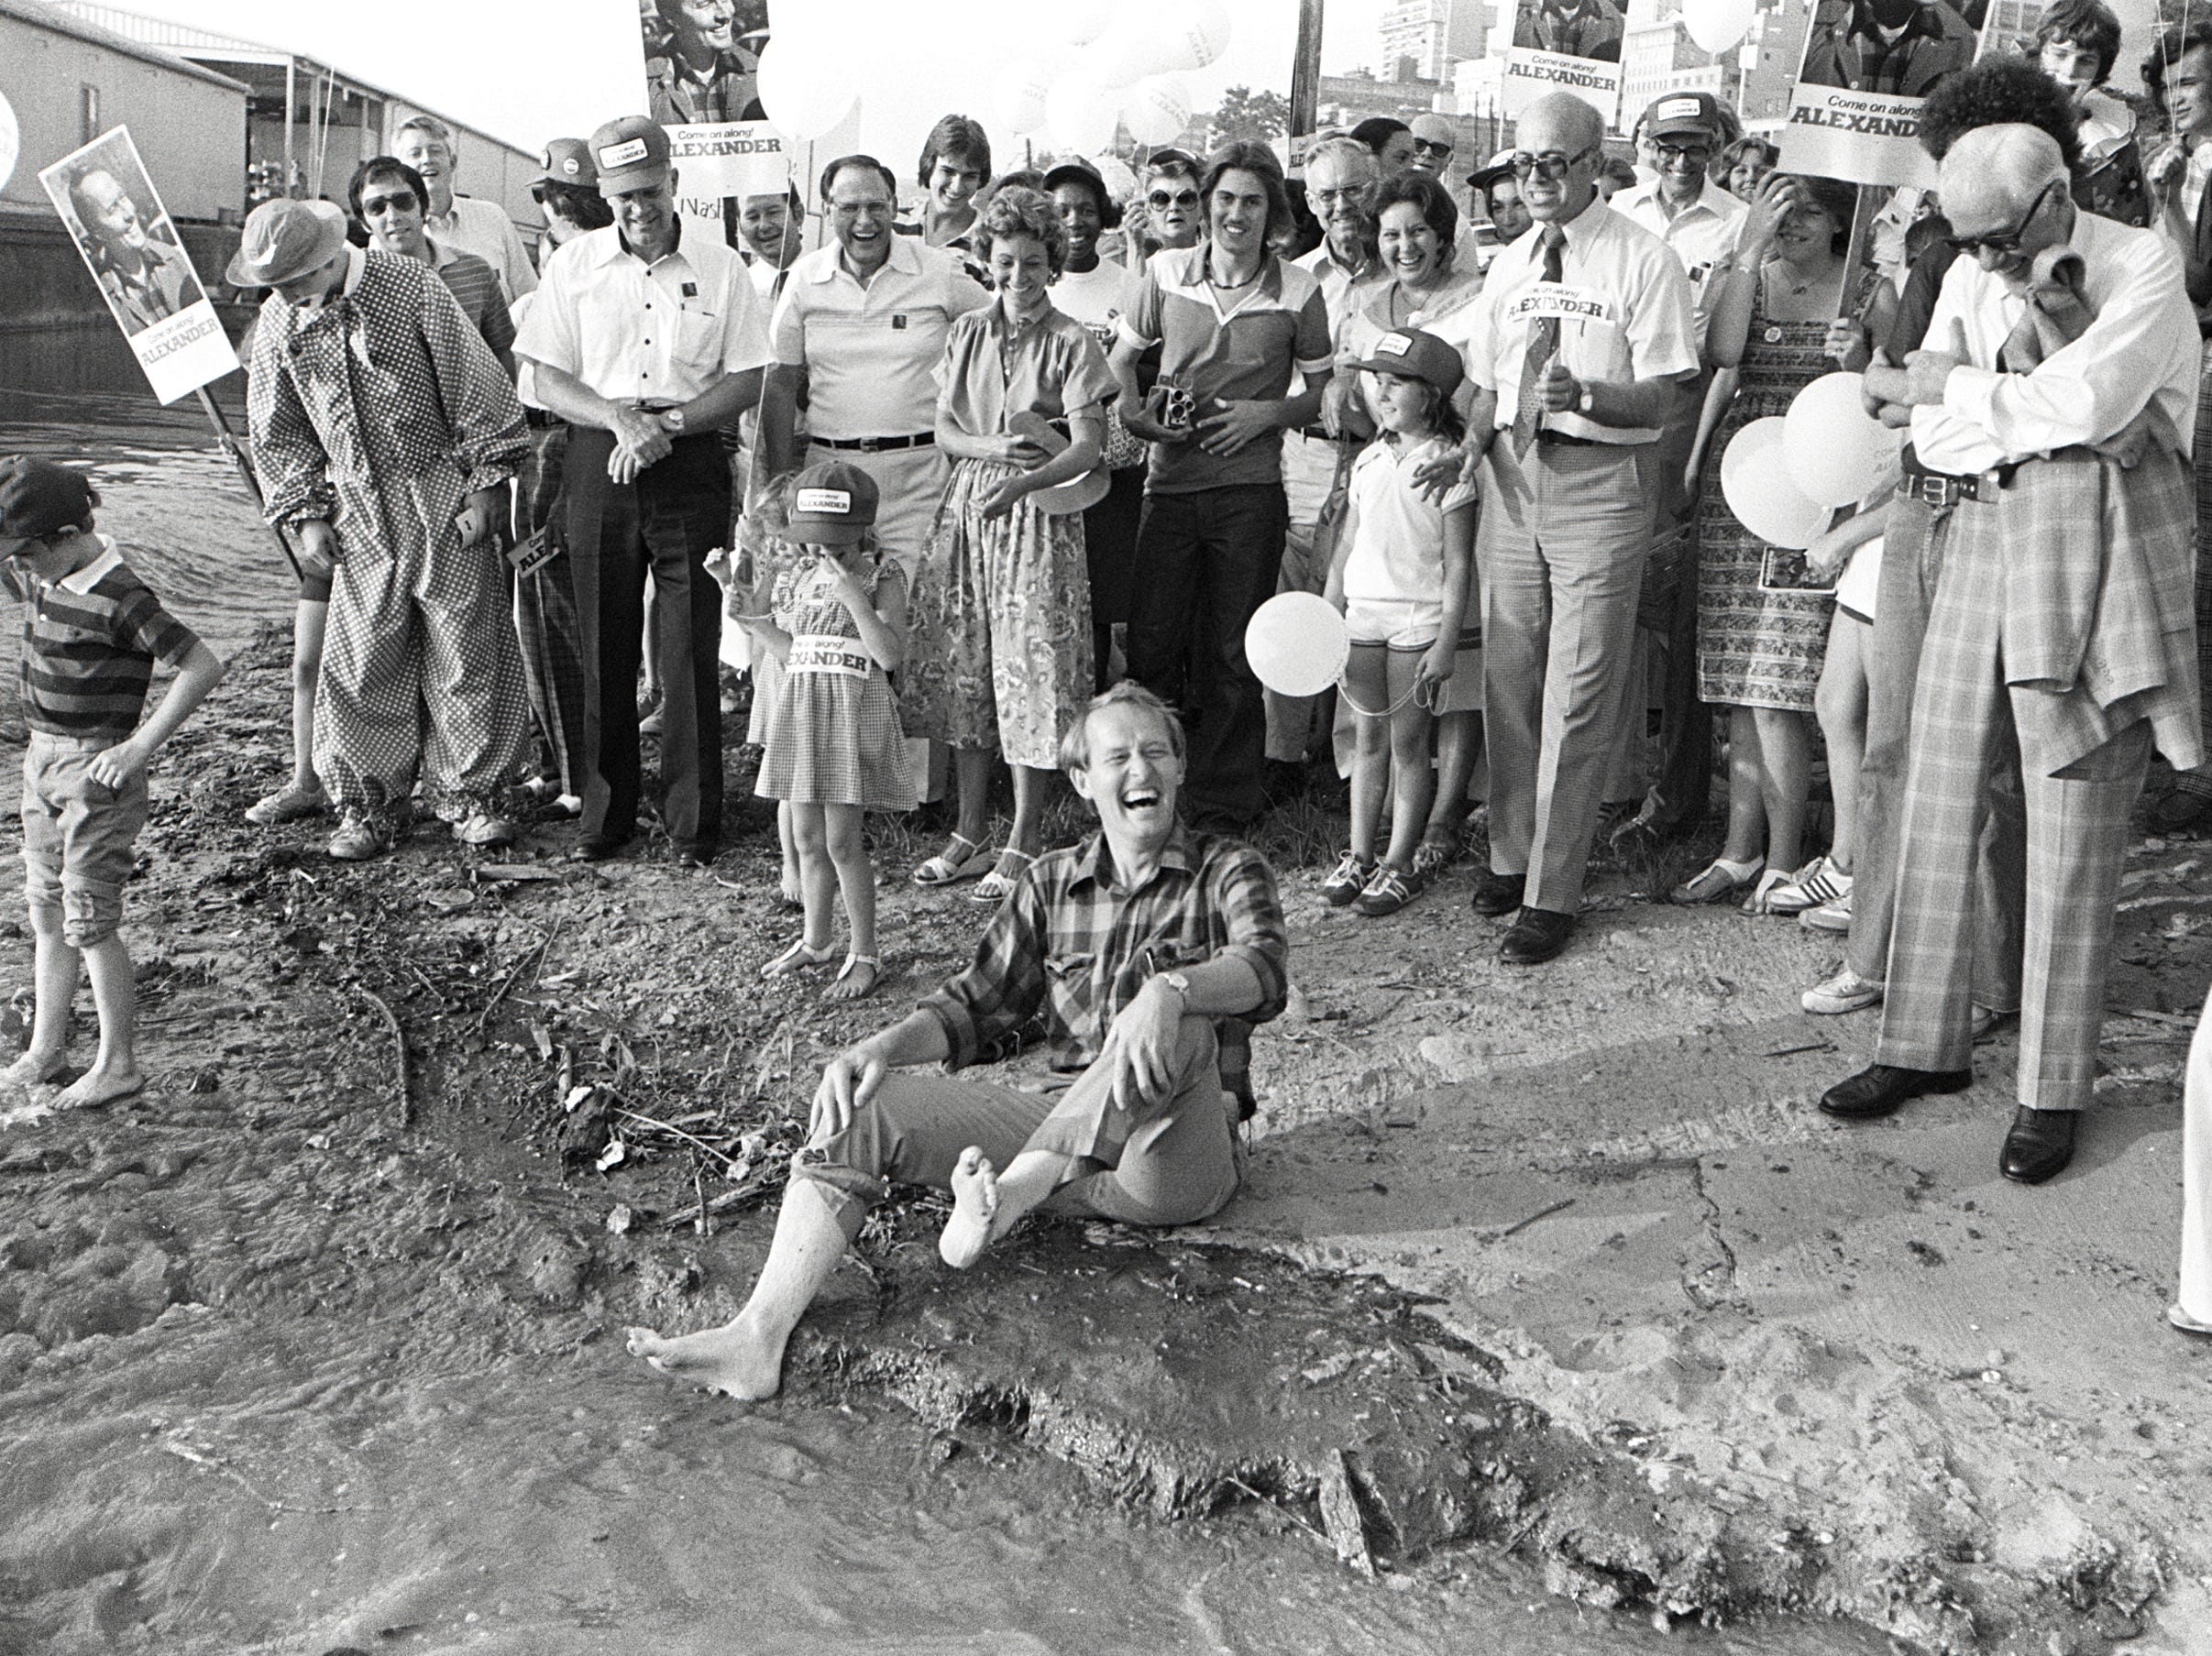 Tennessee Republican gubernatorial candidate Lamar Alexander shares a laugh with supporters as he soaks his feet in the waters of the Mississippi River on 6 July 1978.  He had walked the entire length of the state during his successful campaign.